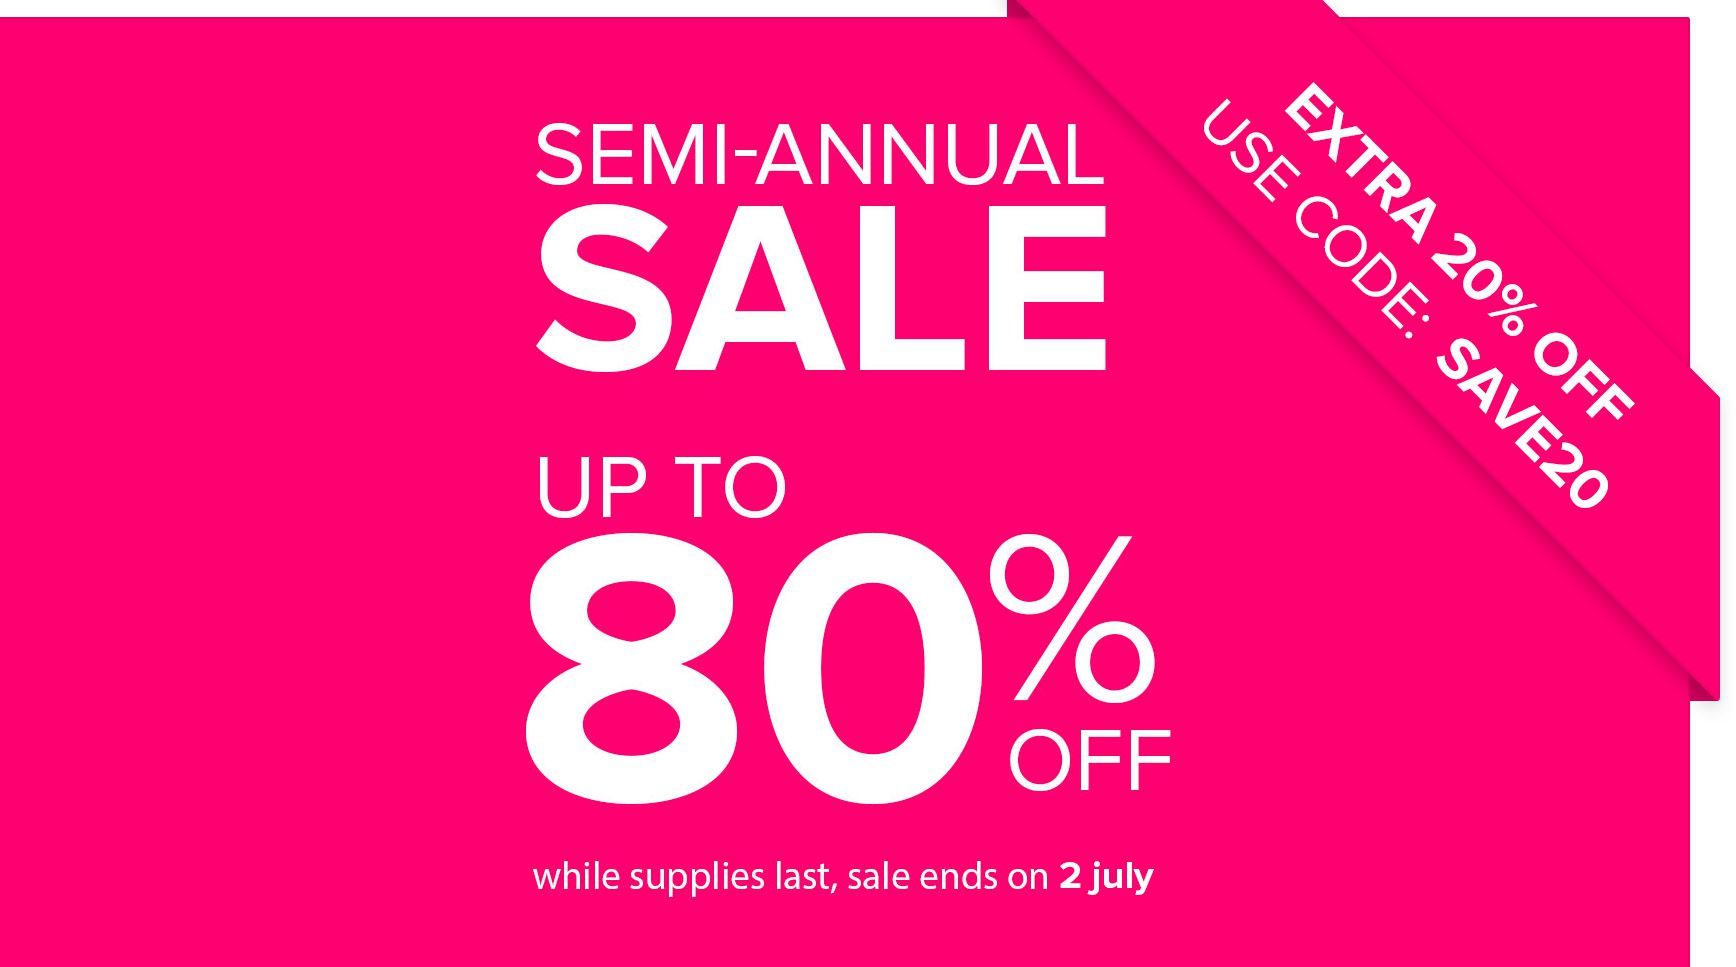 Shop Now - Semi-Annual Sale Up To 80% Off